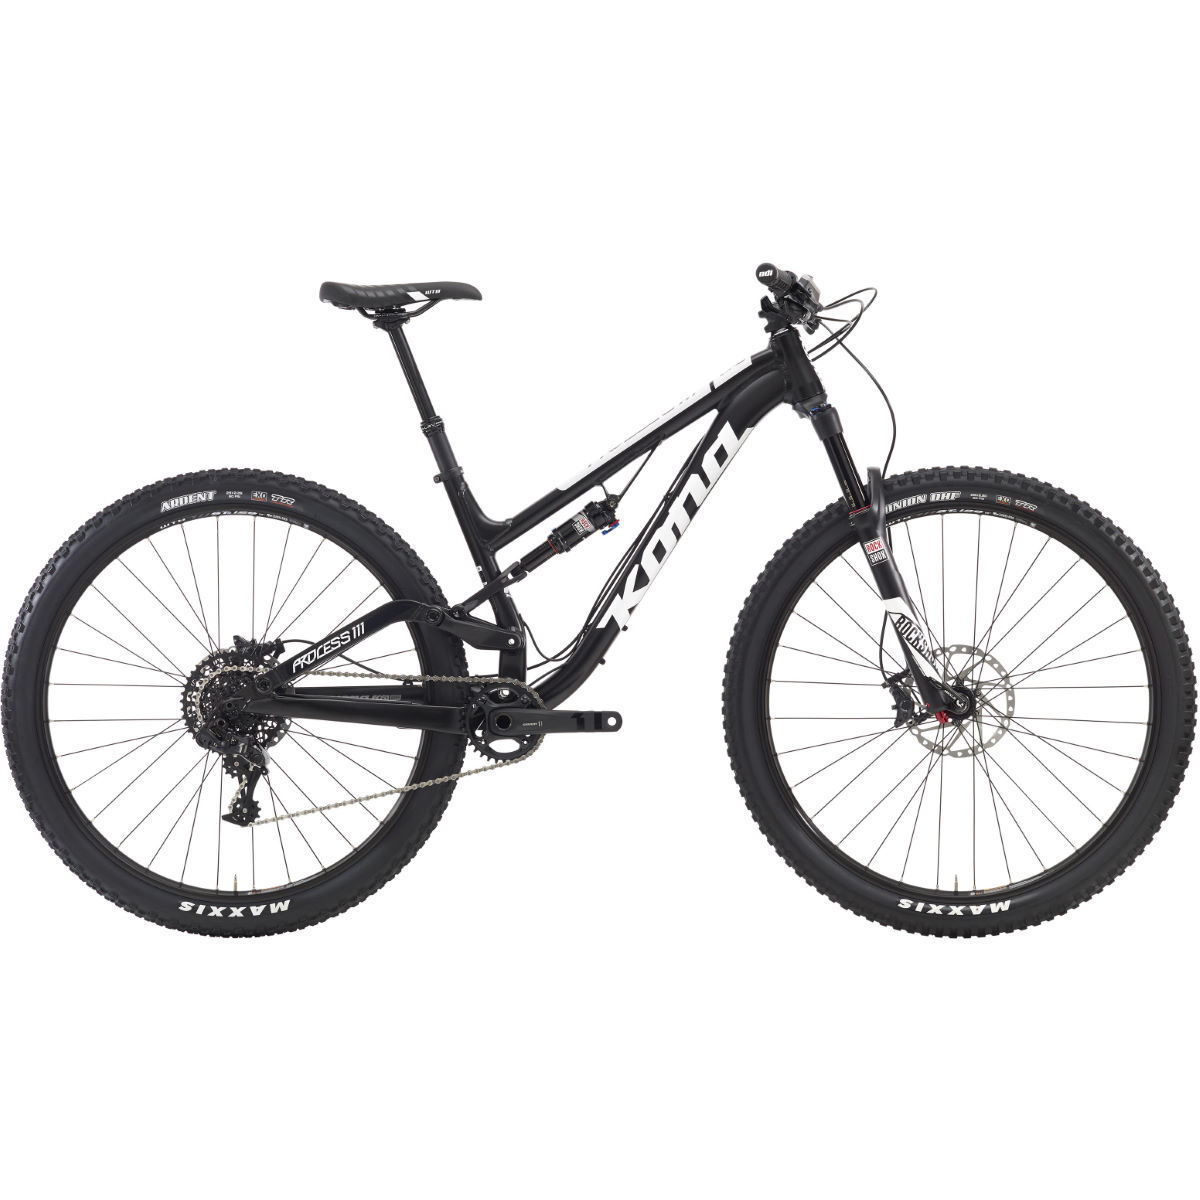 Kona Process 111 (2016)   Full Suspension Mountain Bikes